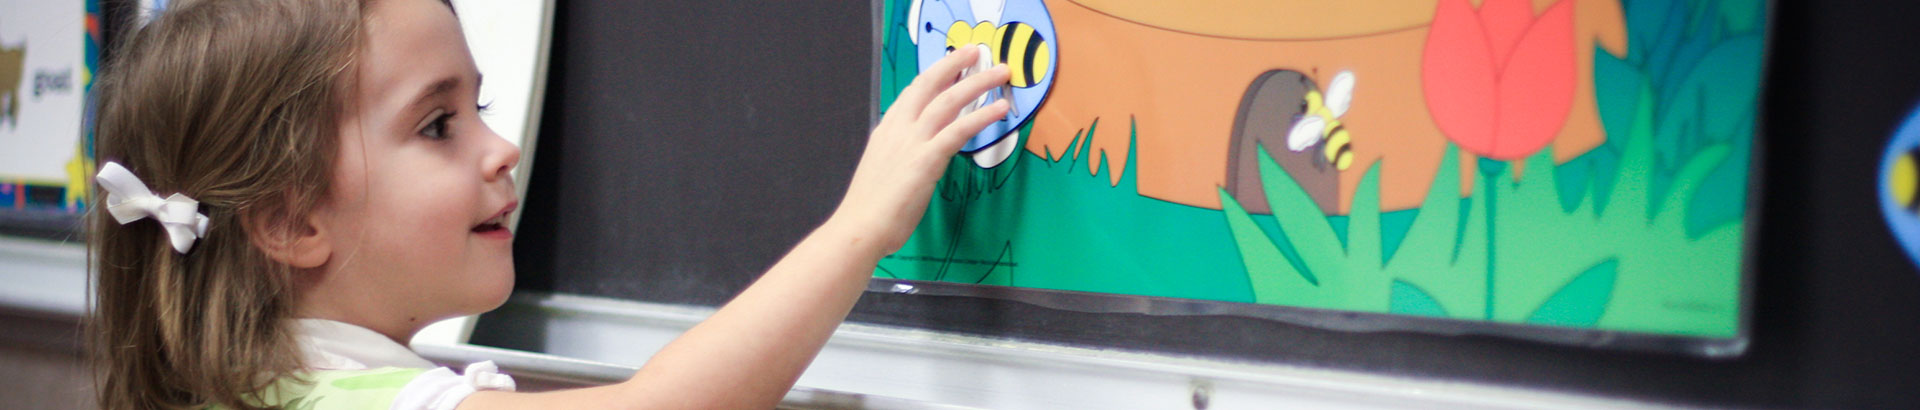 Girl Student Adding Bee to Her Artwork